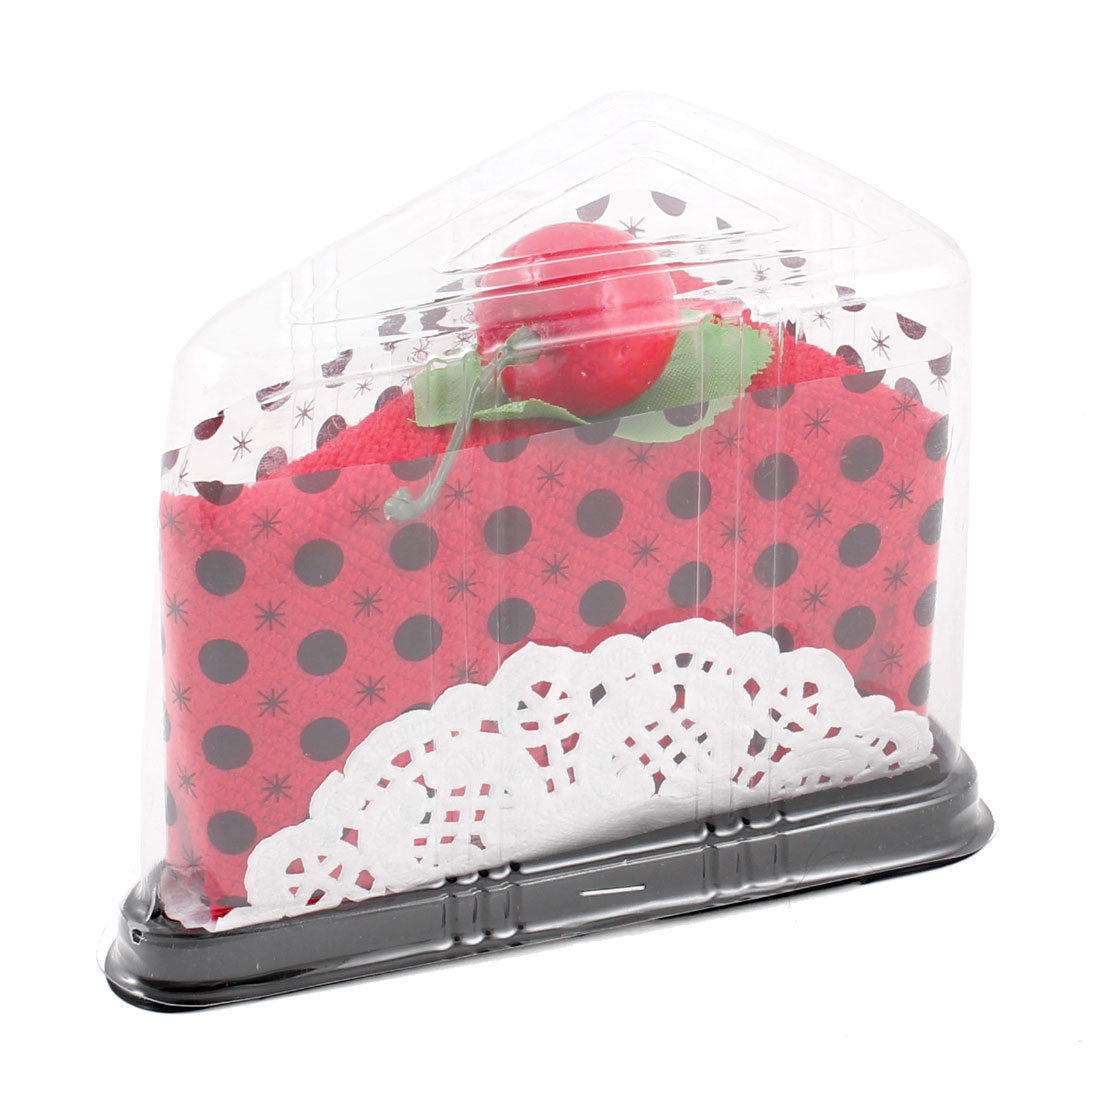 "Home Cherry Detail Cake Shaped 12"" x 12"" Square Red Towel"